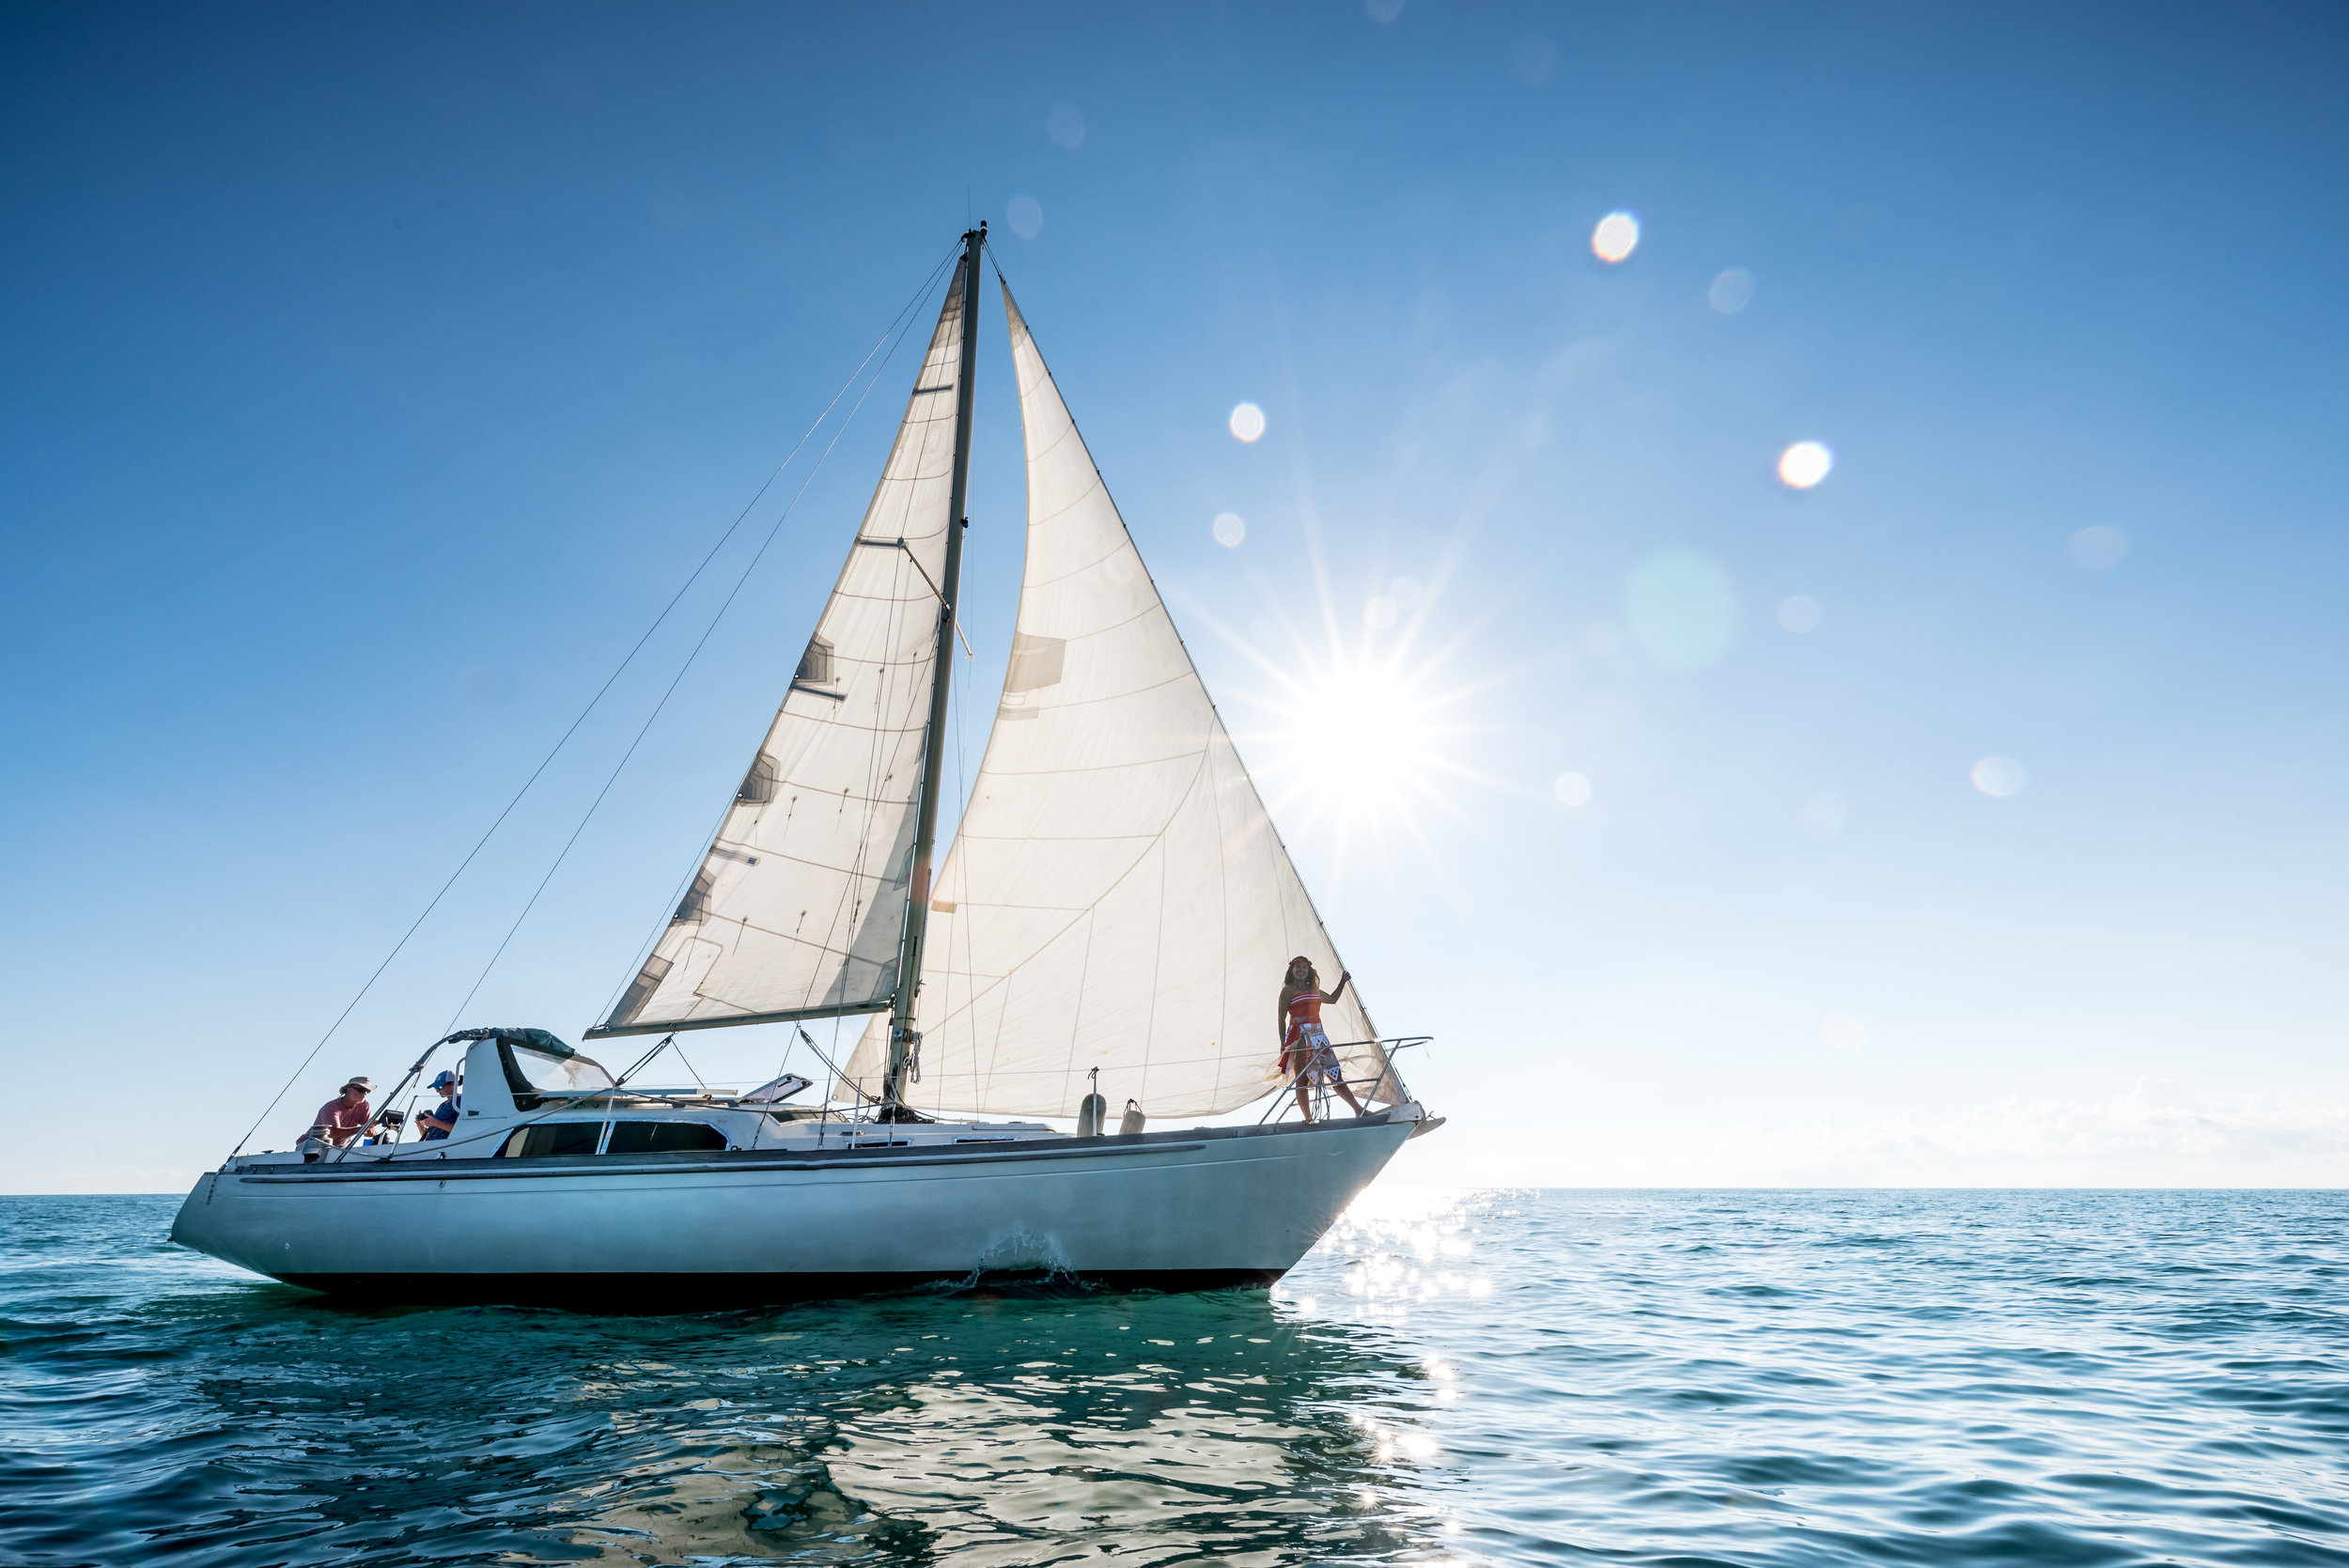 How We Fund our Sailing Life